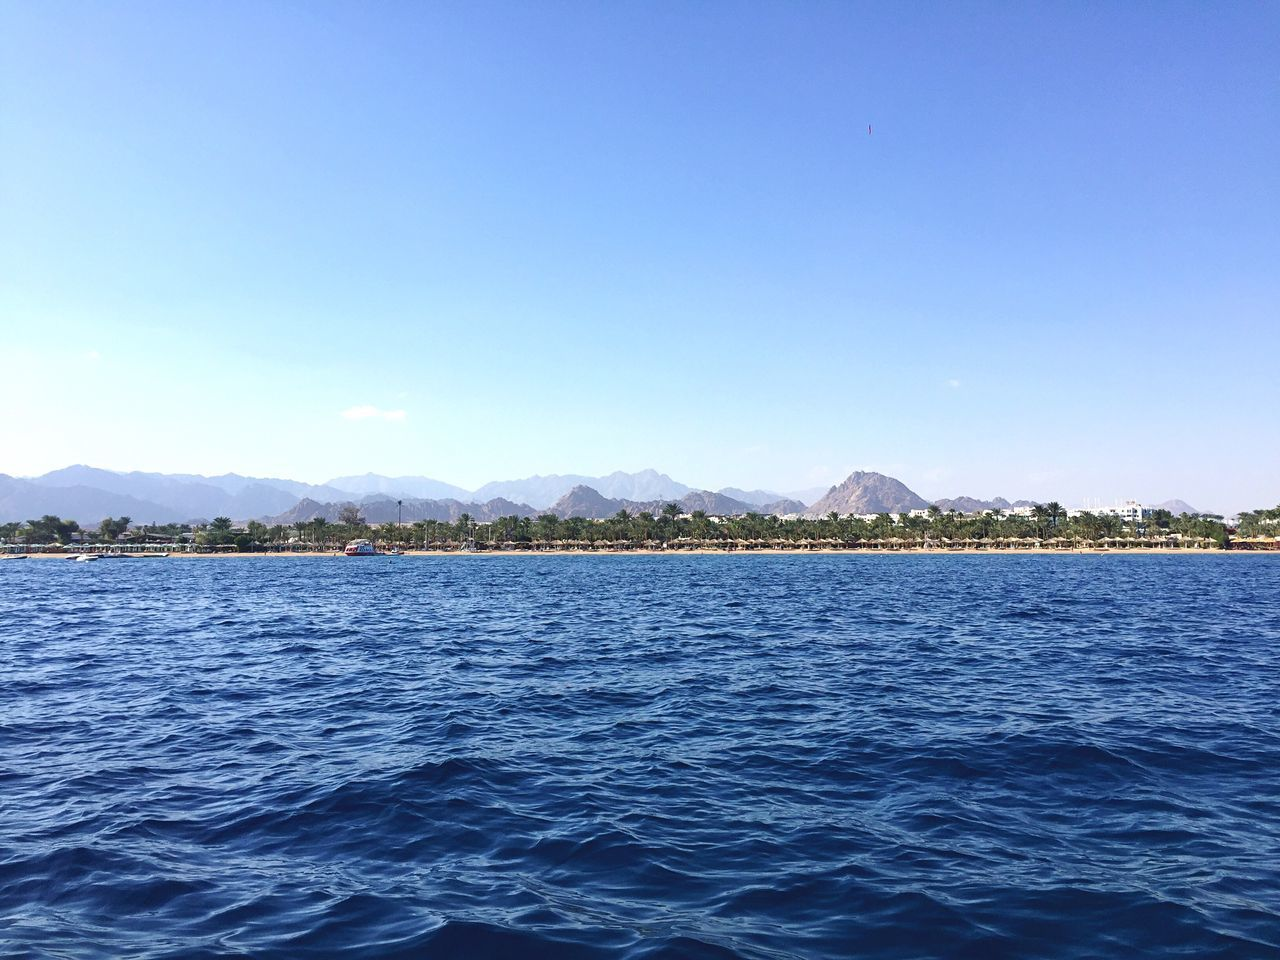 blue, tranquility, beauty in nature, nature, tranquil scene, mountain, water, scenics, no people, lake, waterfront, outdoors, clear sky, day, view into land, sky